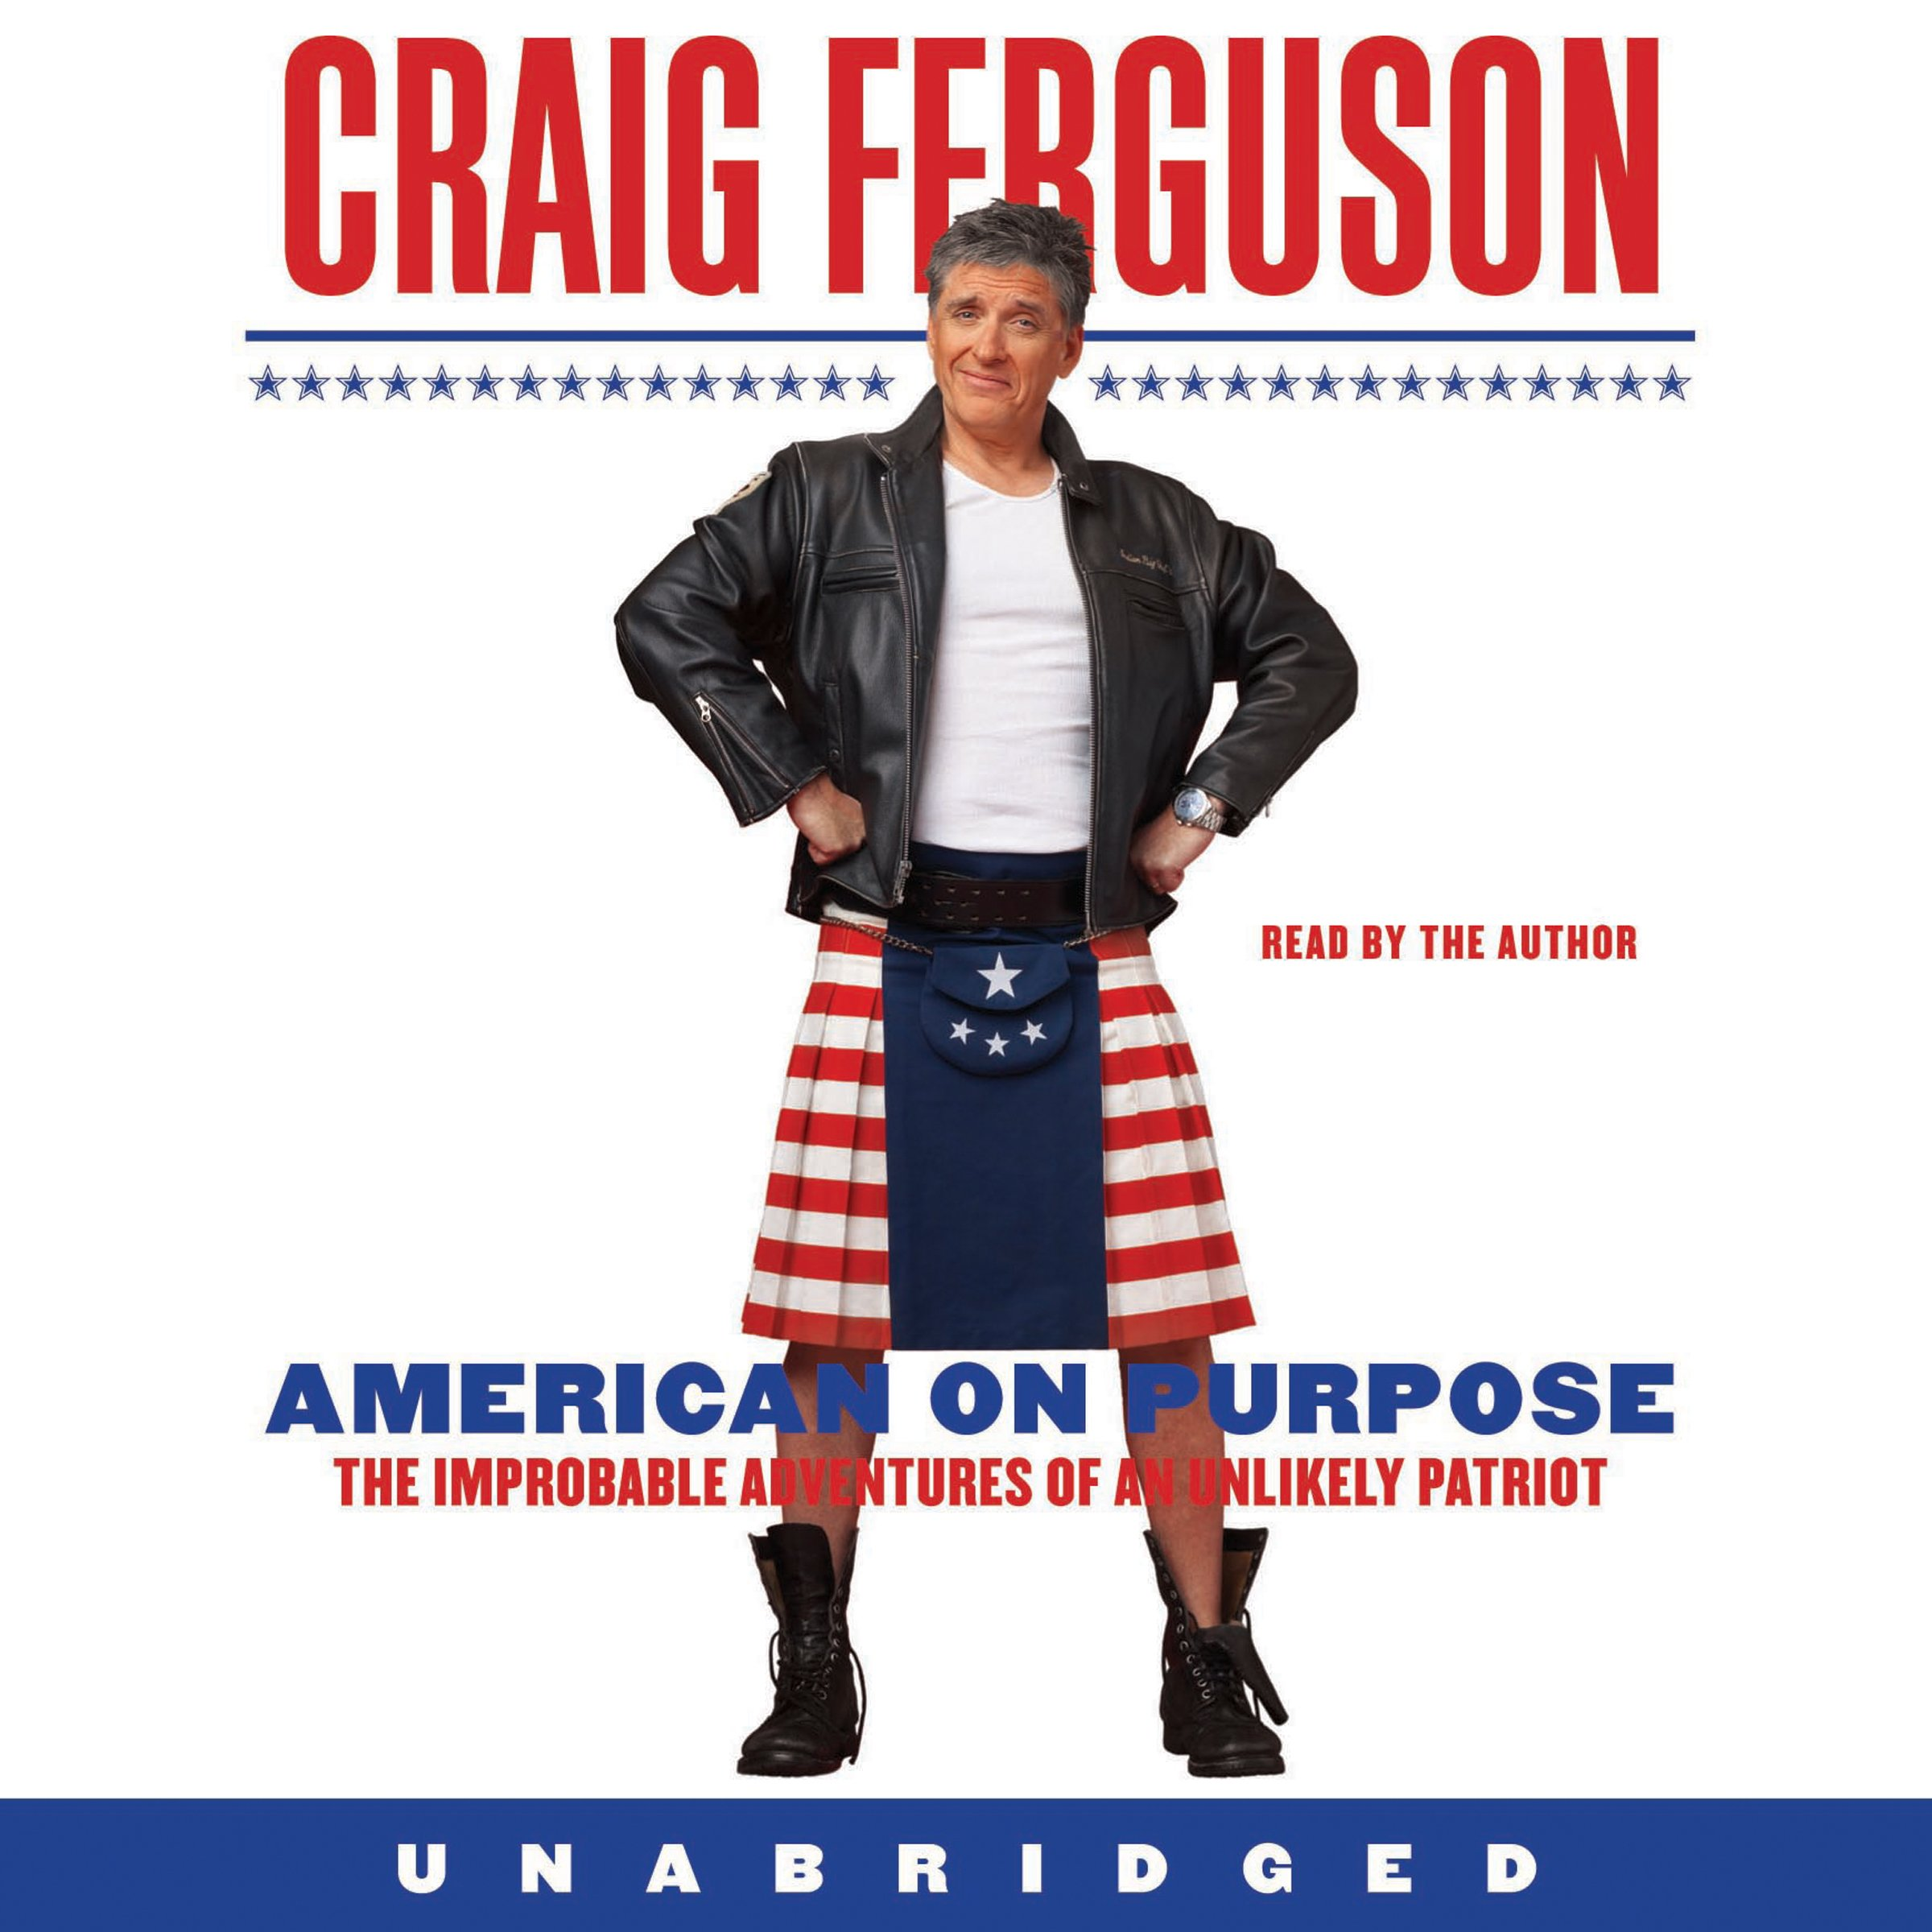 American On Purpose  The Improbable Adventures Of An Unlikely Patriot